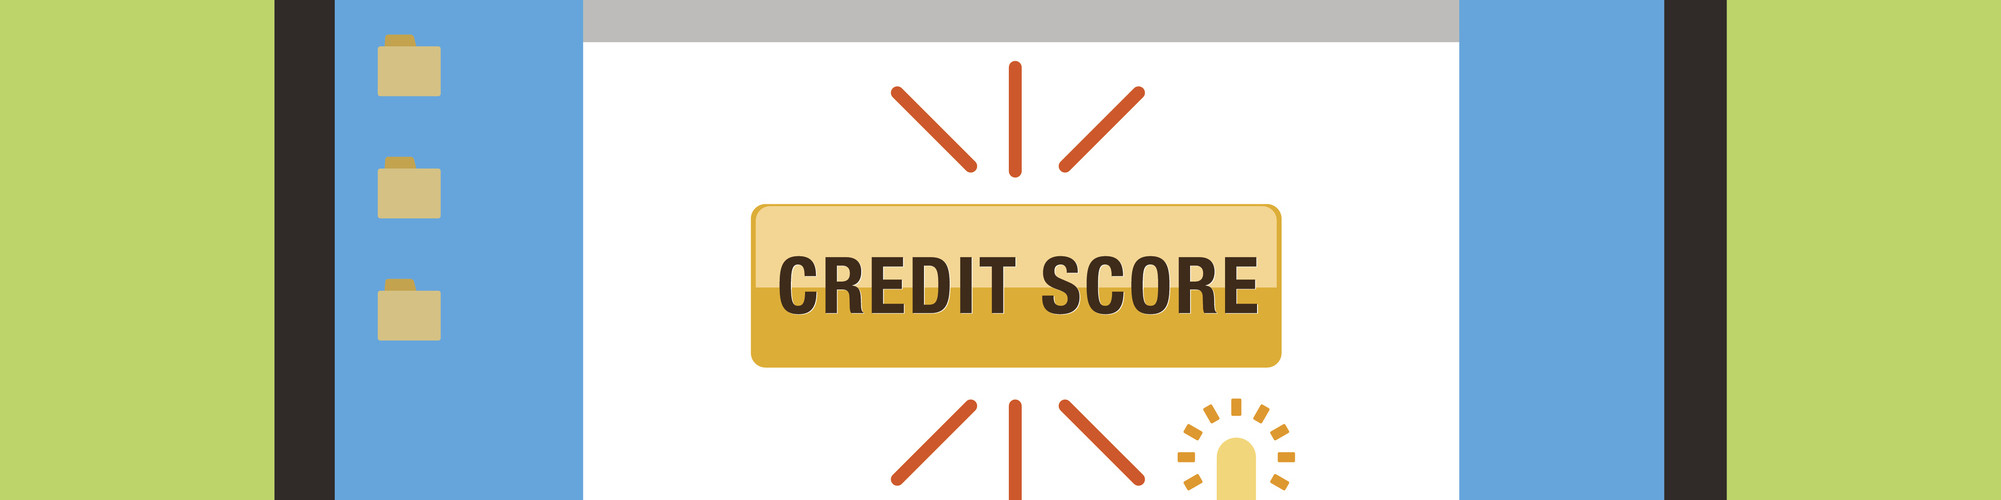 credit score button